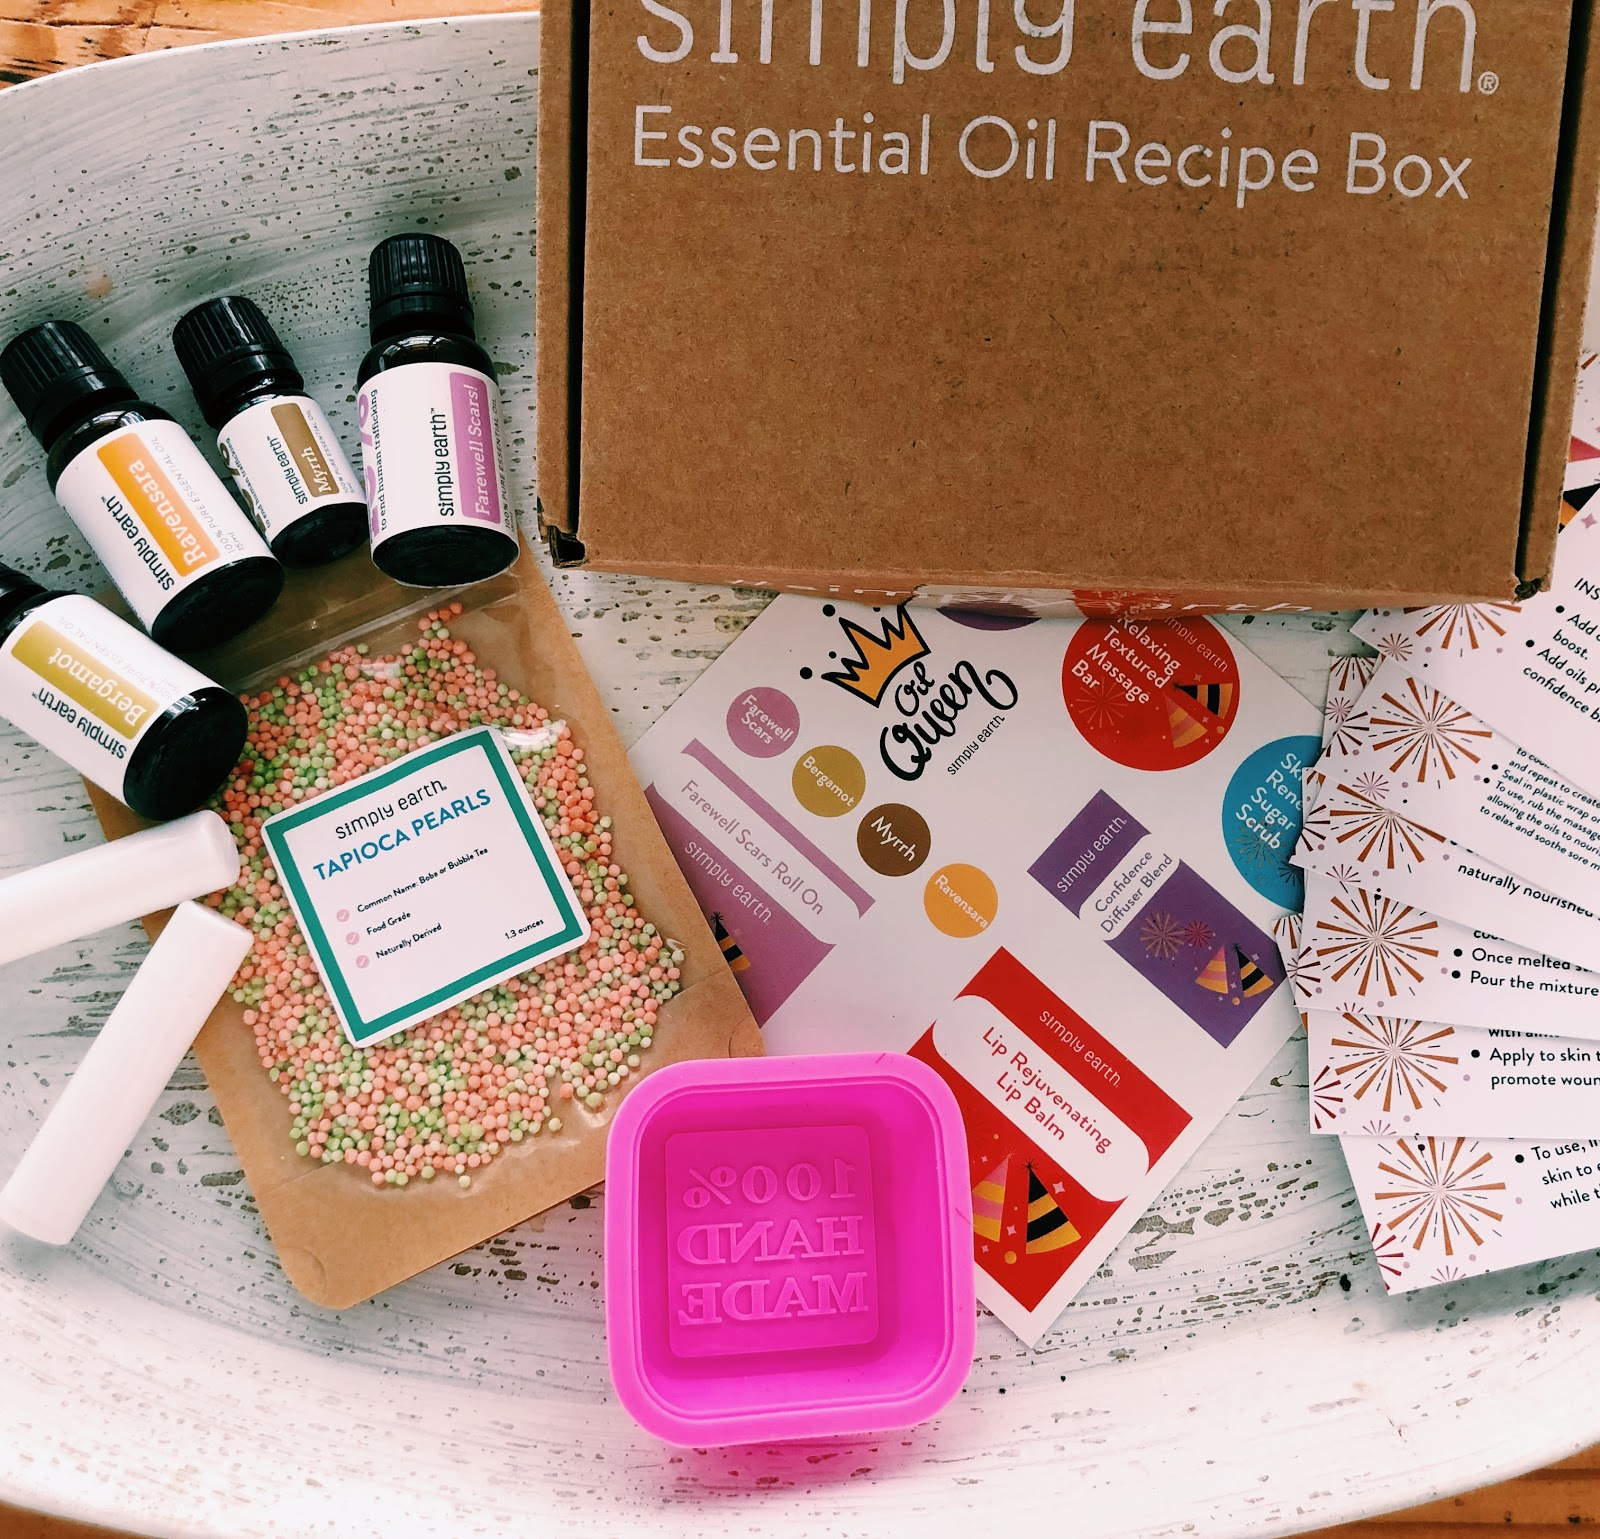 Simply Earth's January Box: Nourishing Skincare With